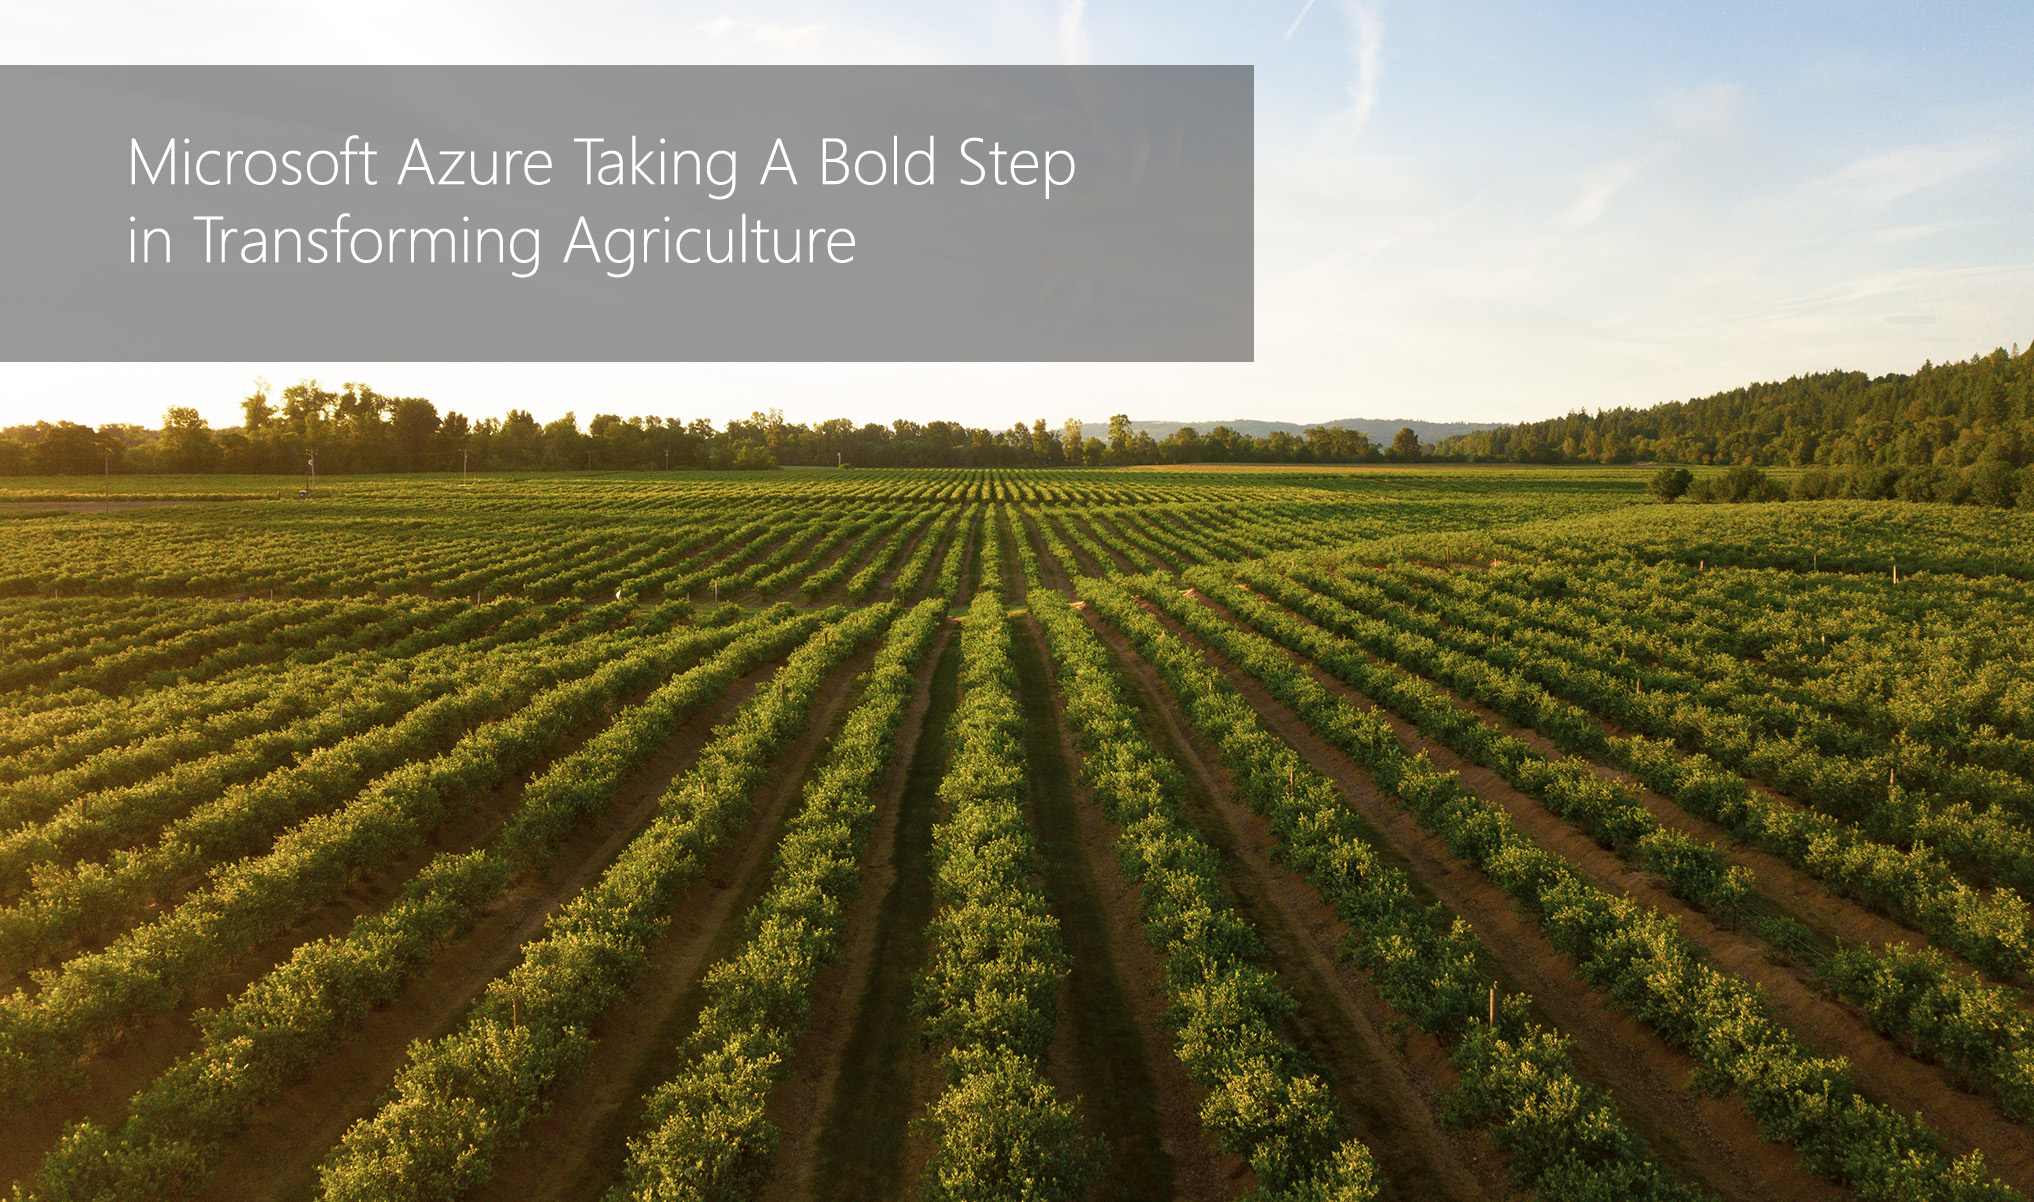 Microsoft Azure Taking A Bold Step in Transforming Agriculture